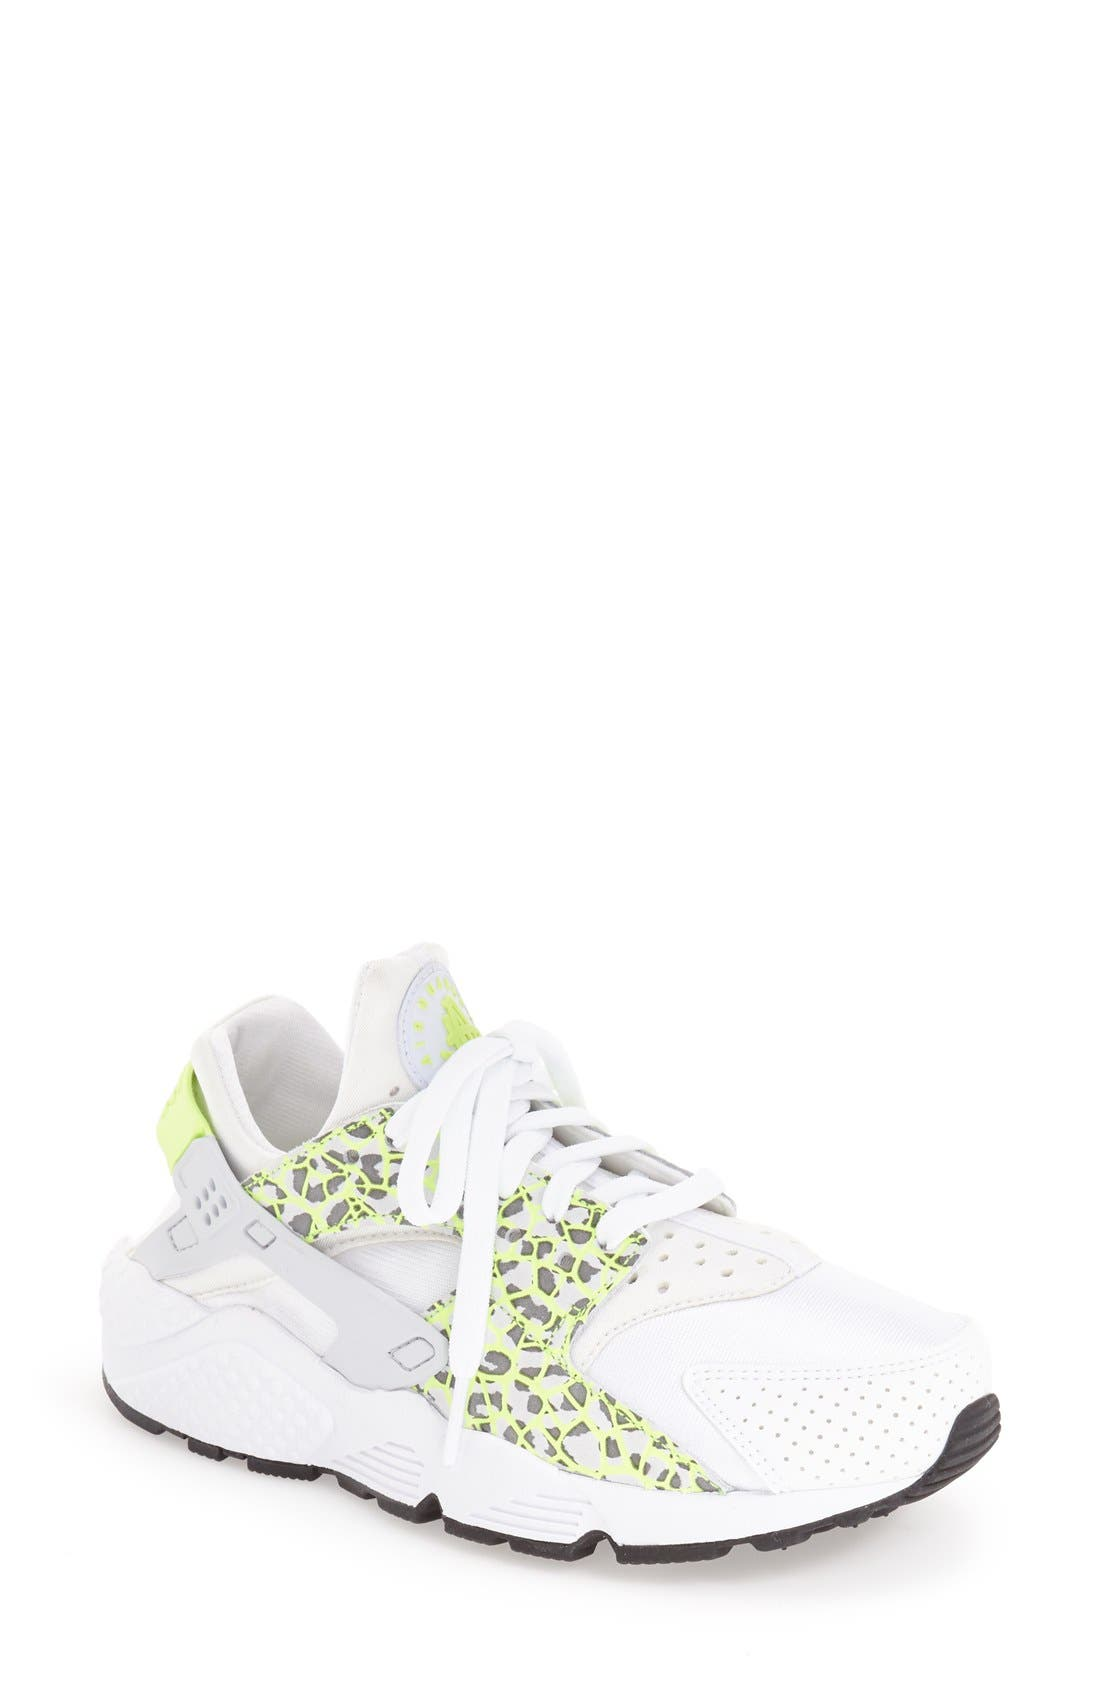 Alternate Image 1 Selected - Nike 'Air Huarache' Sneaker (Women)